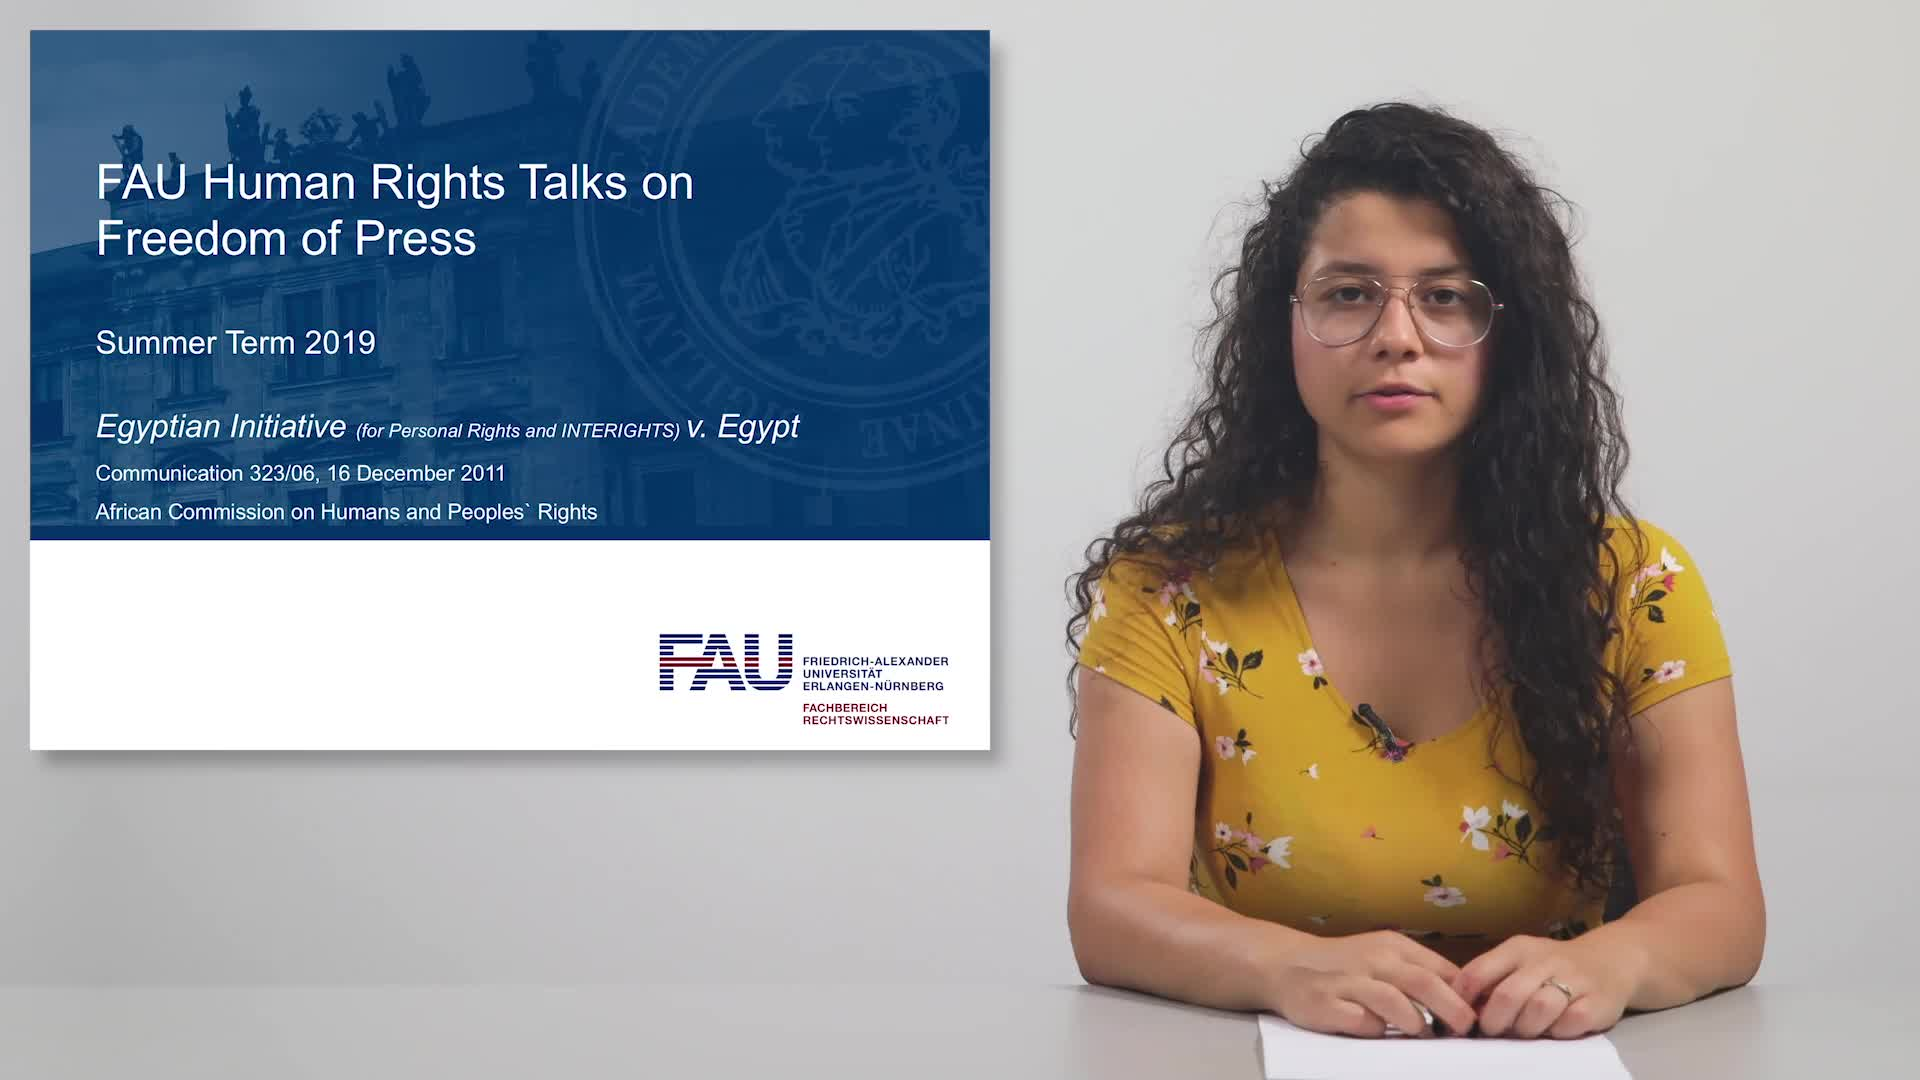 FAU Human Rights Talks – Summer Term 2019: Egyptian Initiative (for Personal Rights and INTERIGHTS) v. Egypt preview image